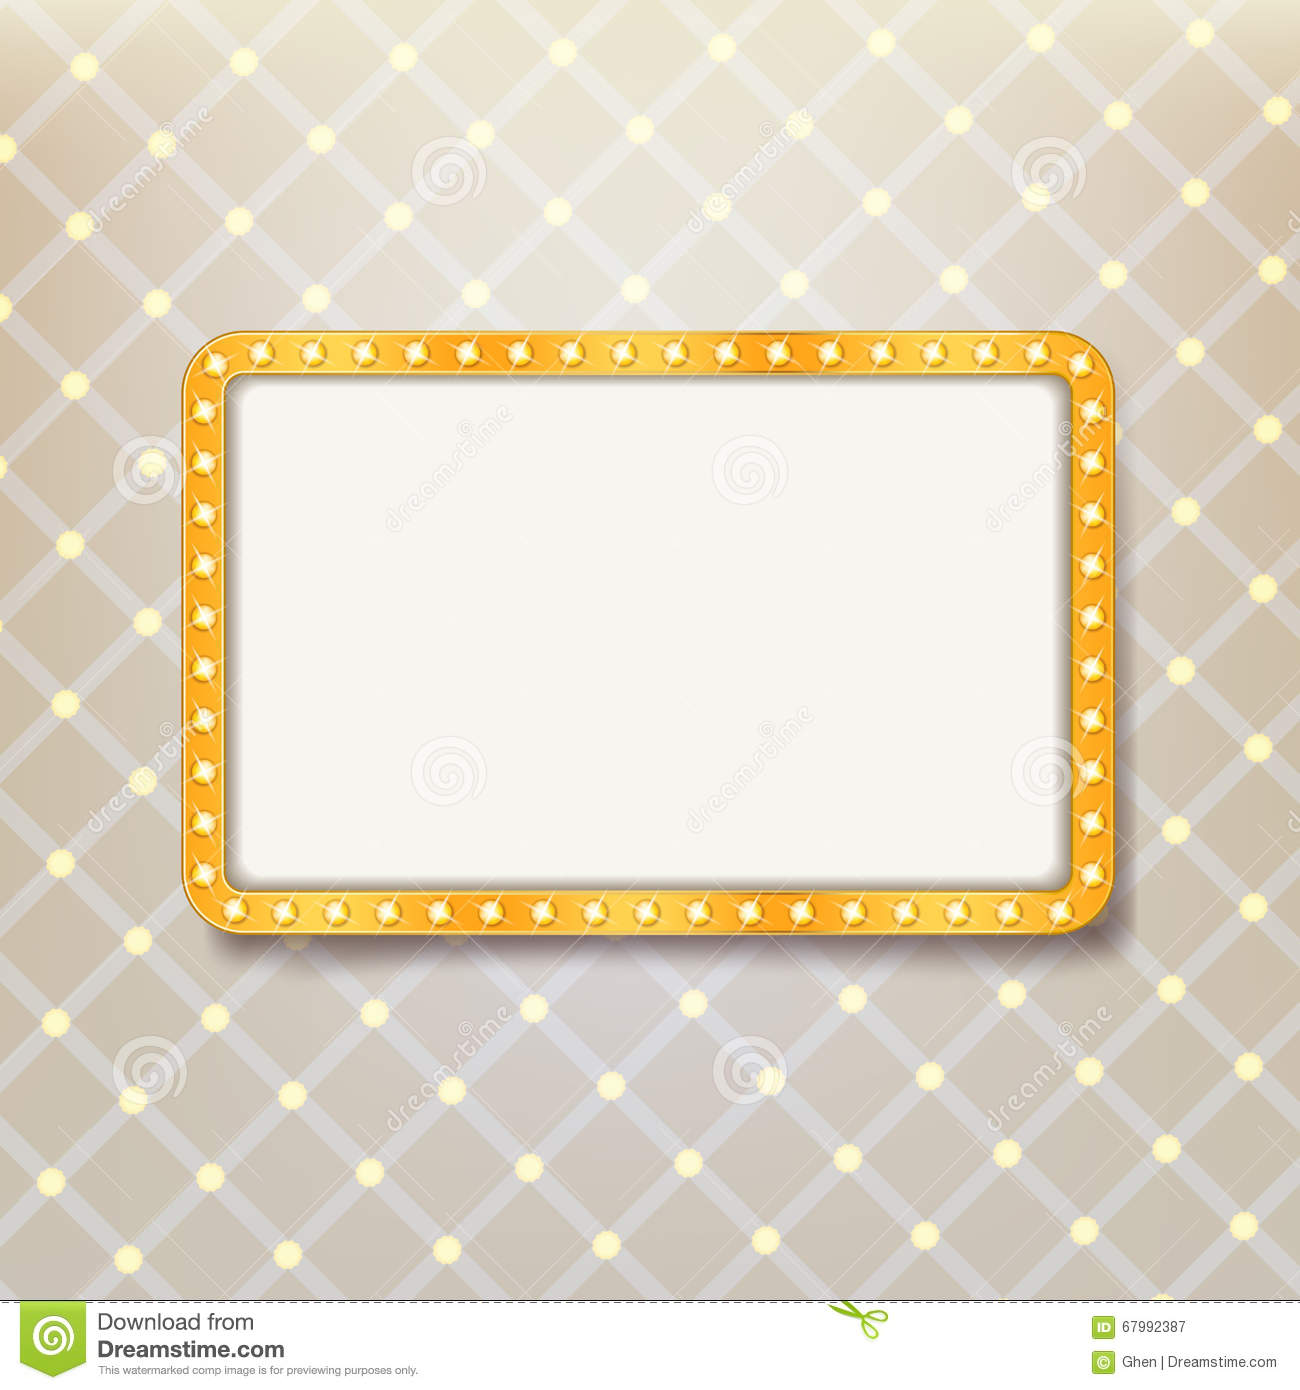 Golden Retro Frame With Light Bulbs On Royal Pattern Background ...